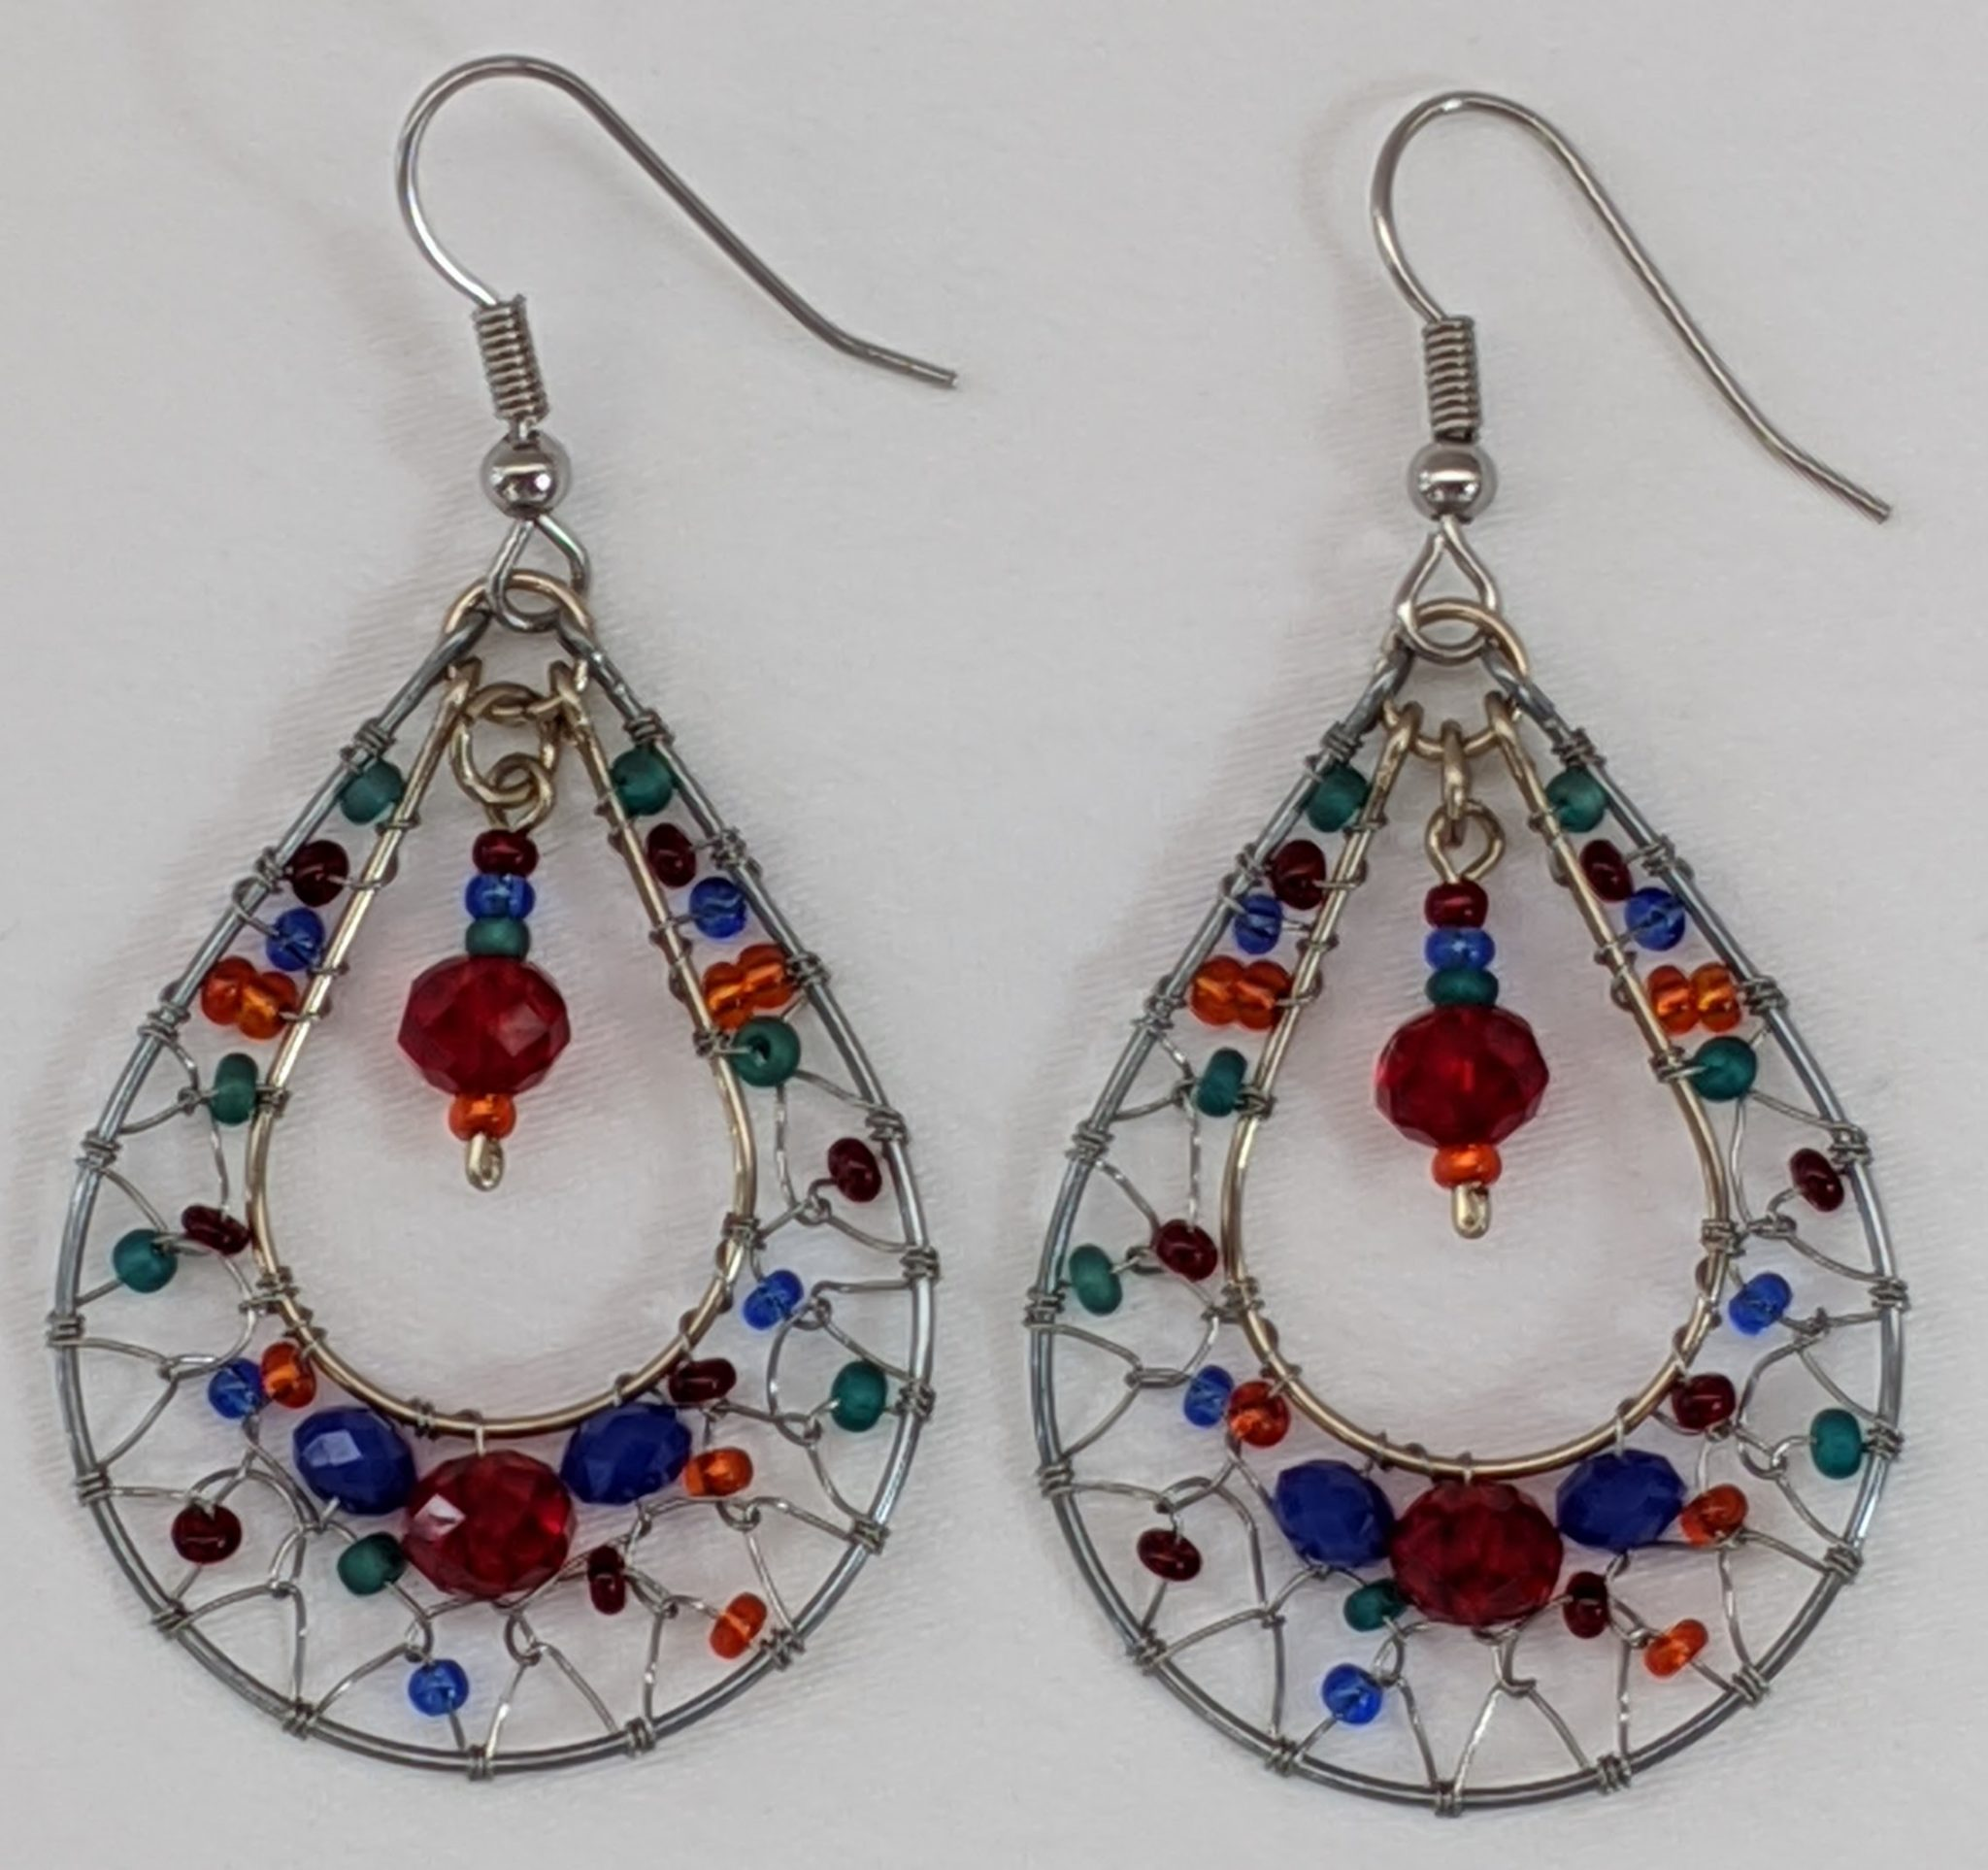 Teardrop Dreamcatcher Earrings  - Fiesta